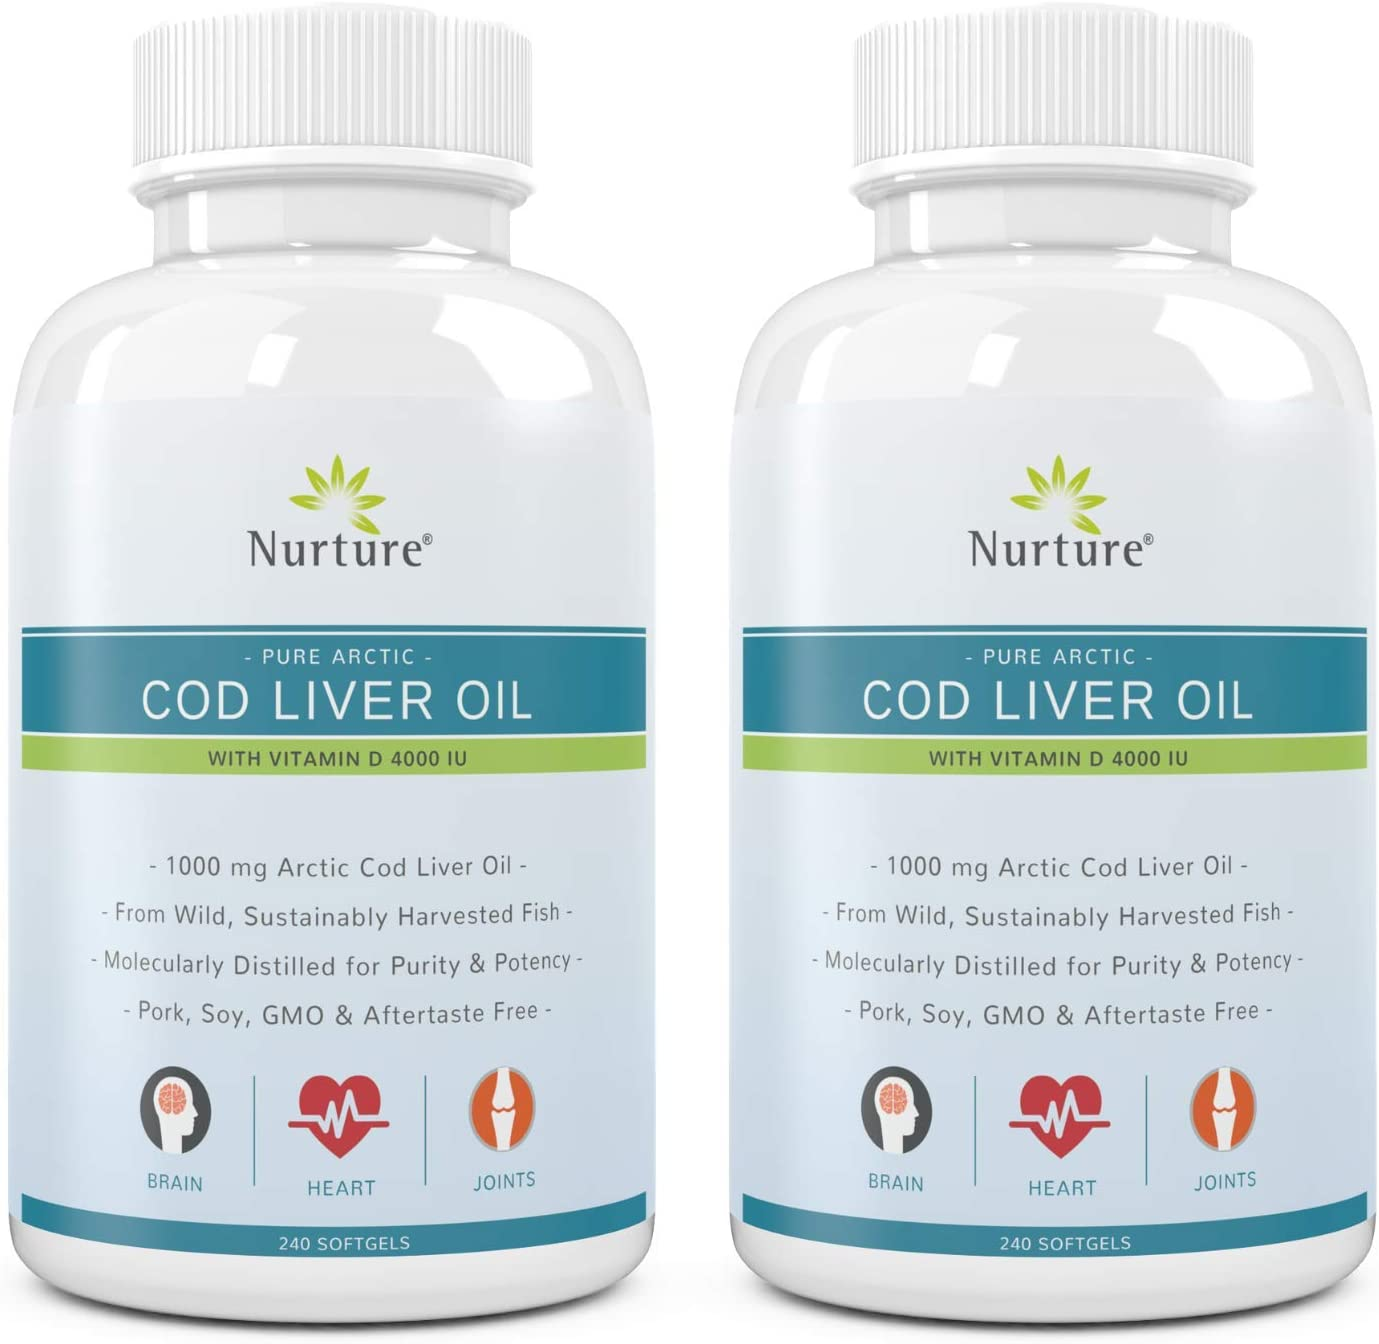 Pure Arctic Cod Liver Oil with Vitamin D 4000 IU (2-Pack) | 1000 mg Cod Liver Oil – Promotes Brain, Joint & Cardiovascular Health – 360 Liquid Softgel Capsules